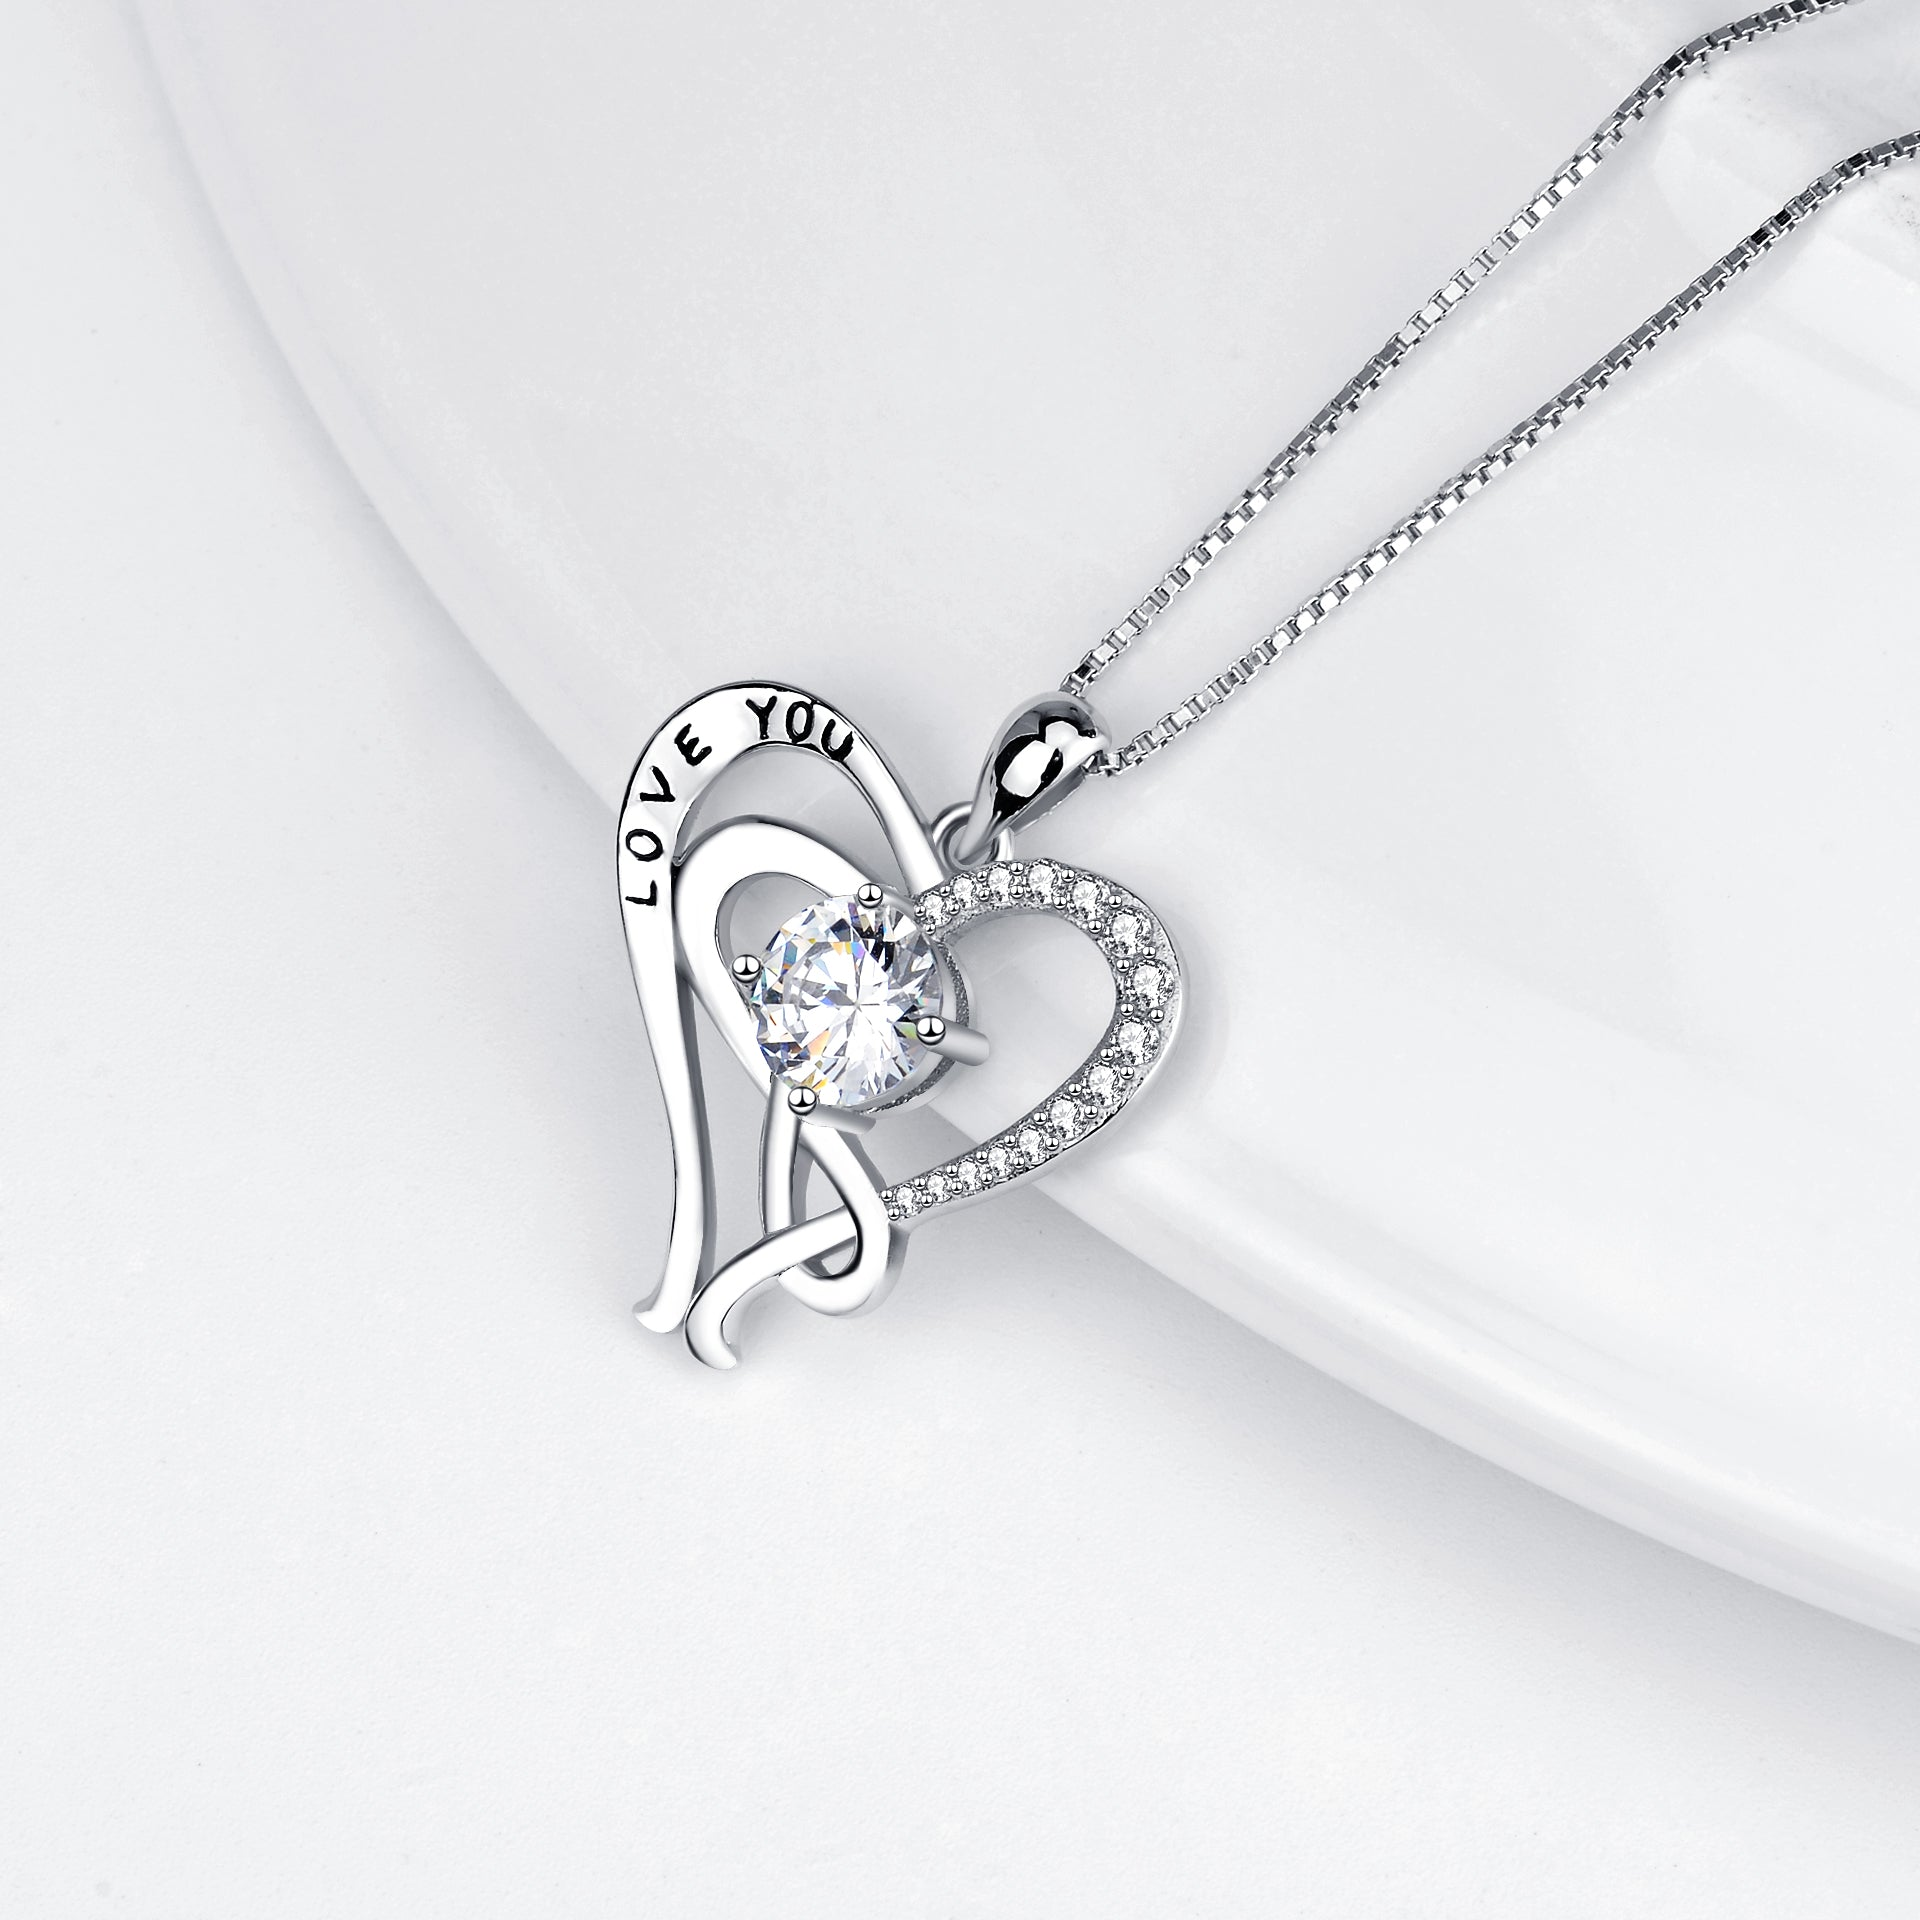 CZ Heart Zirconia Necklace Design I Love You Engraved Silver Necklace